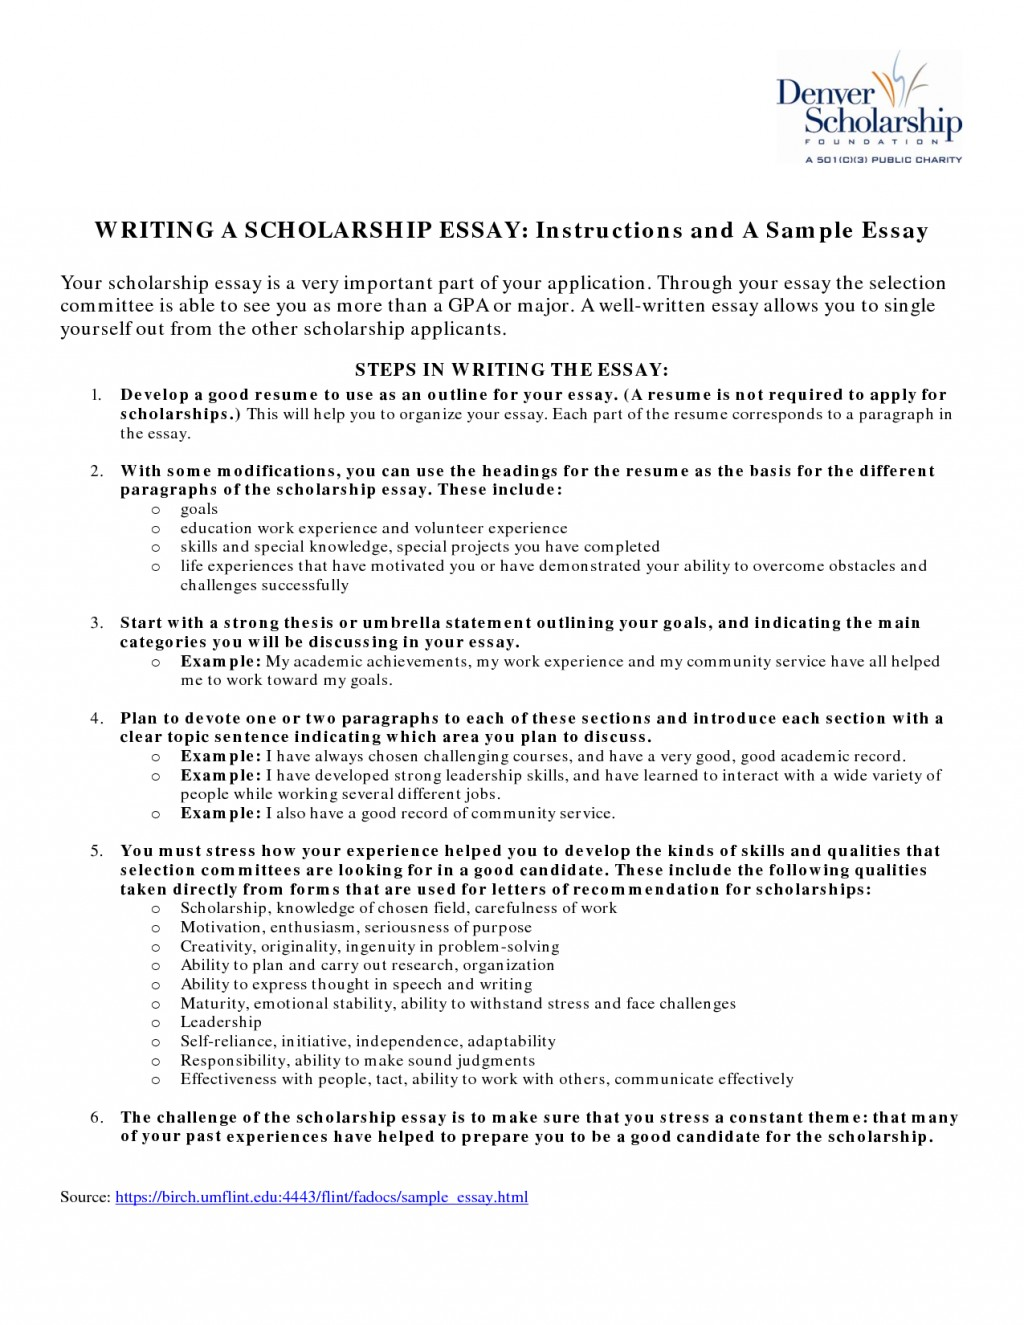 023 Essay Example What To Write For Scholarship About Yourself On Tips Writing Effective Essays Awesome A How That Stands Out In Good Large